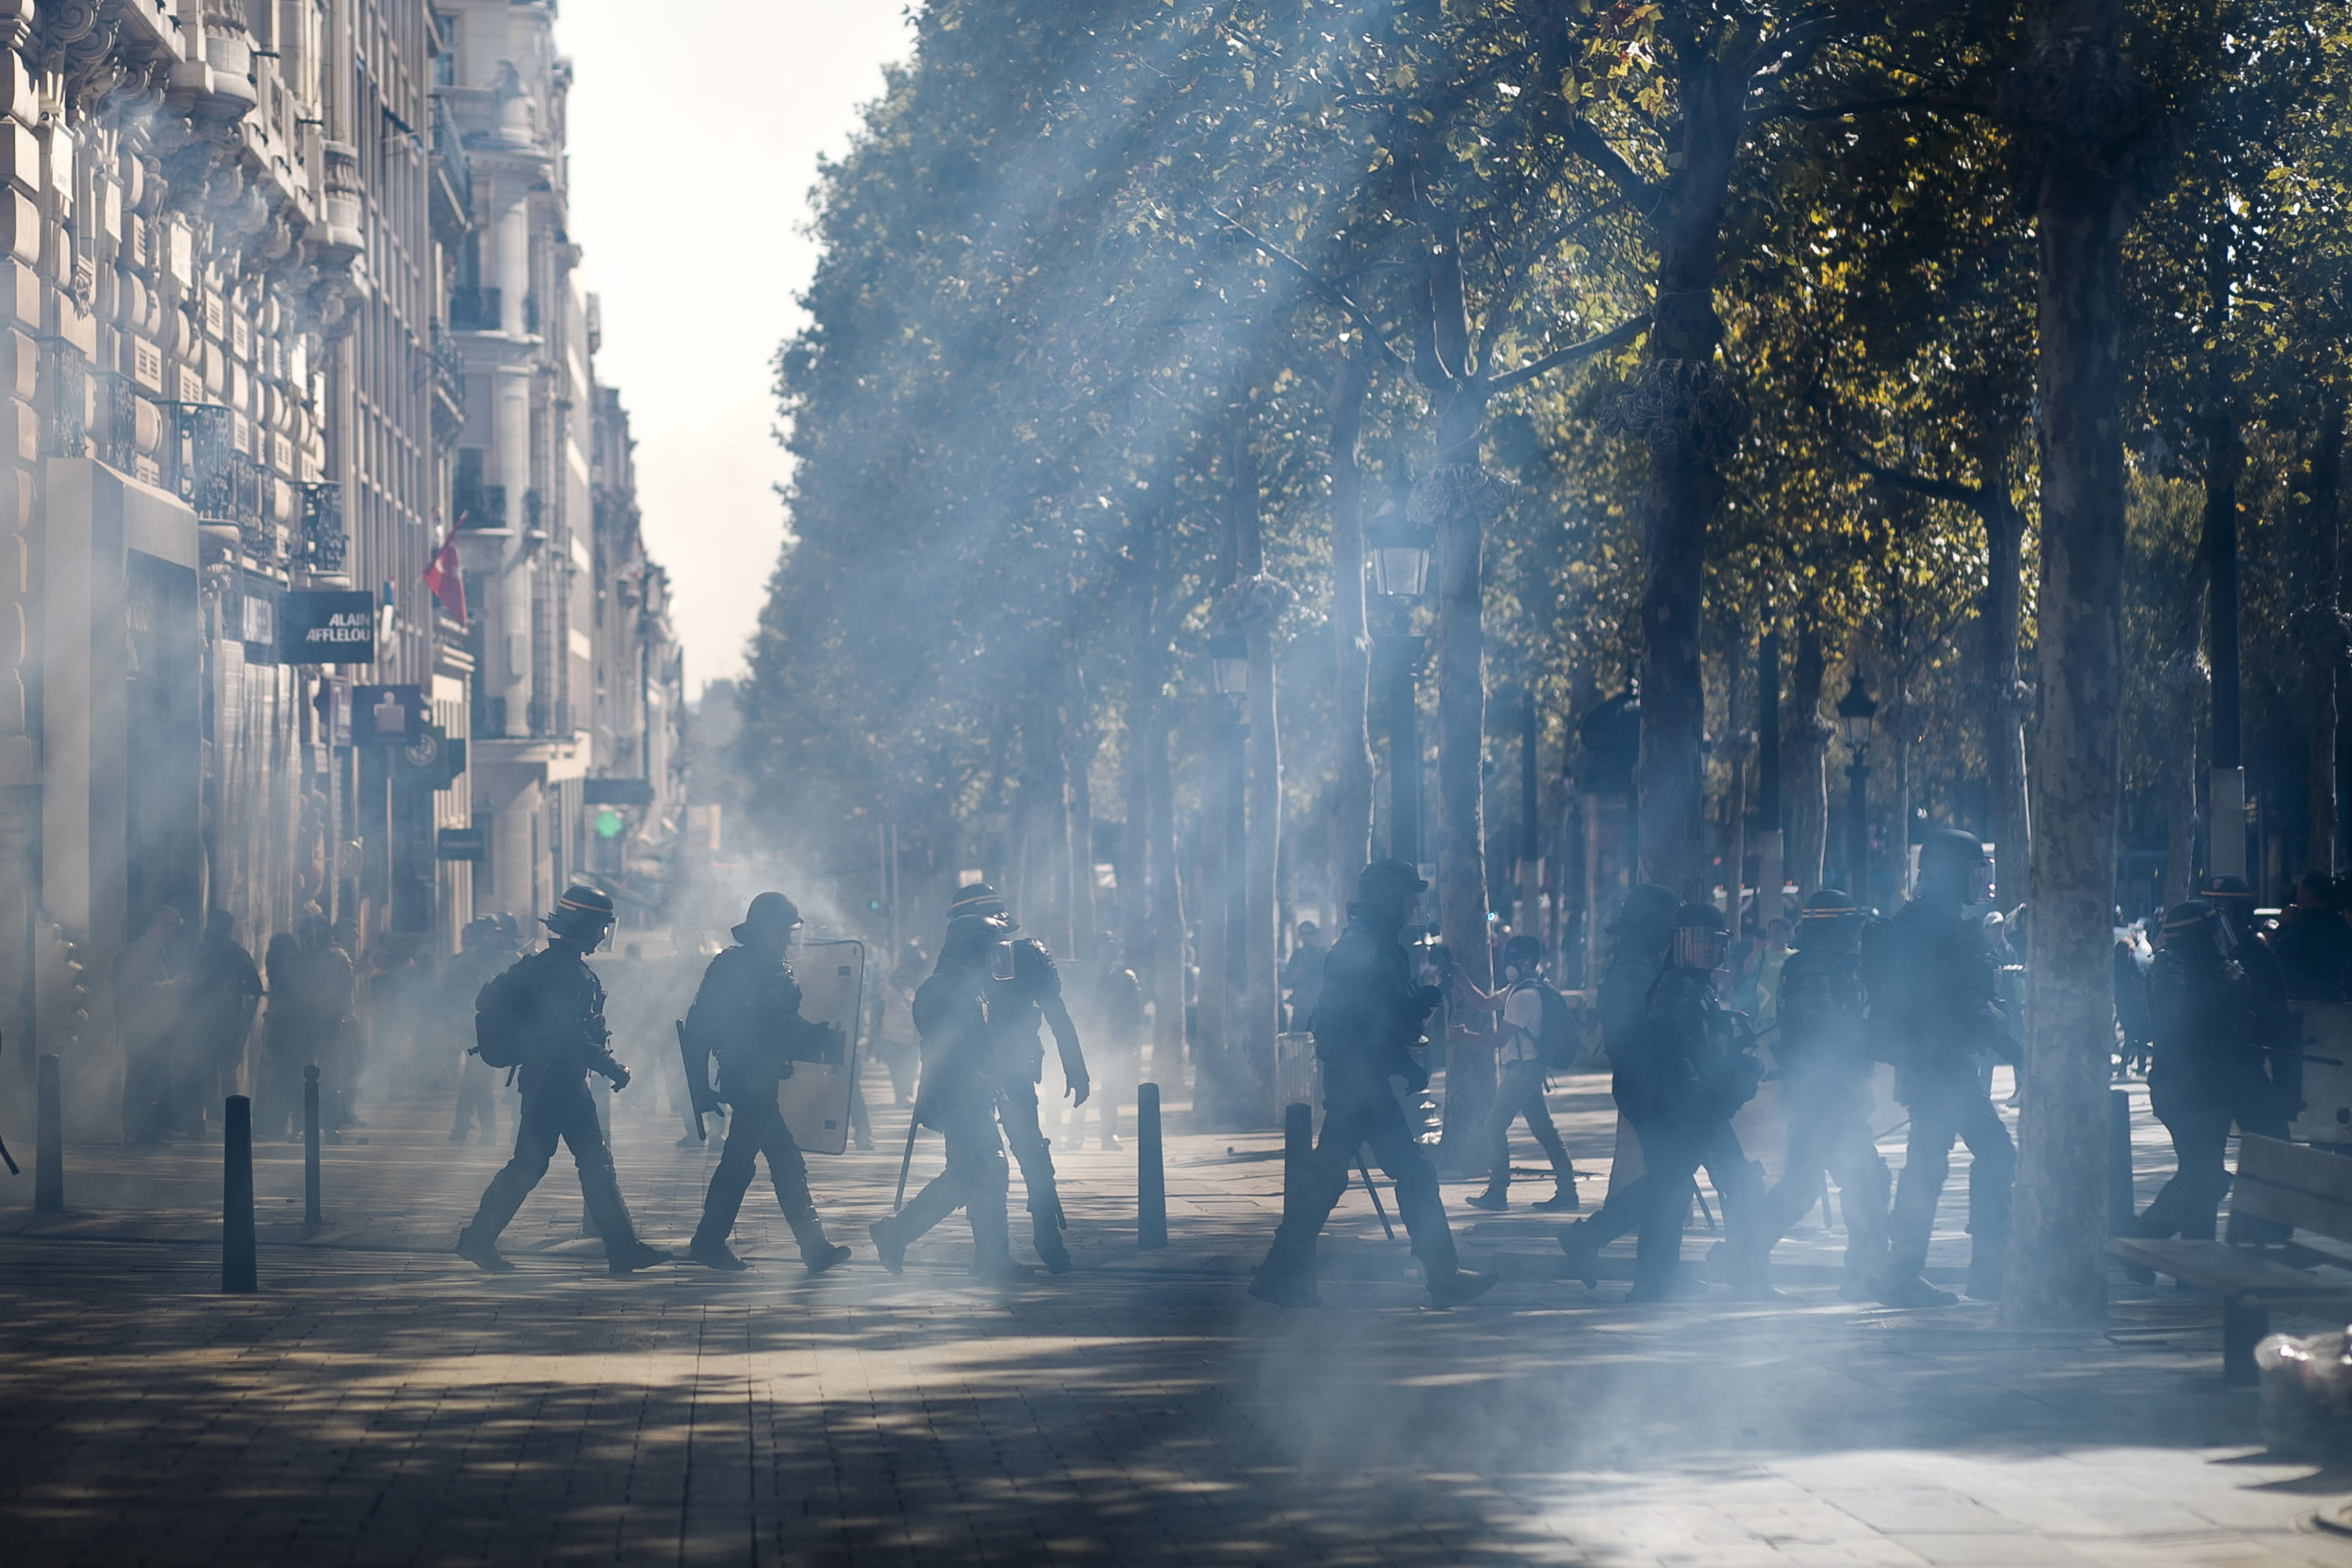 Police use tear gas in Paris amid an array of protests